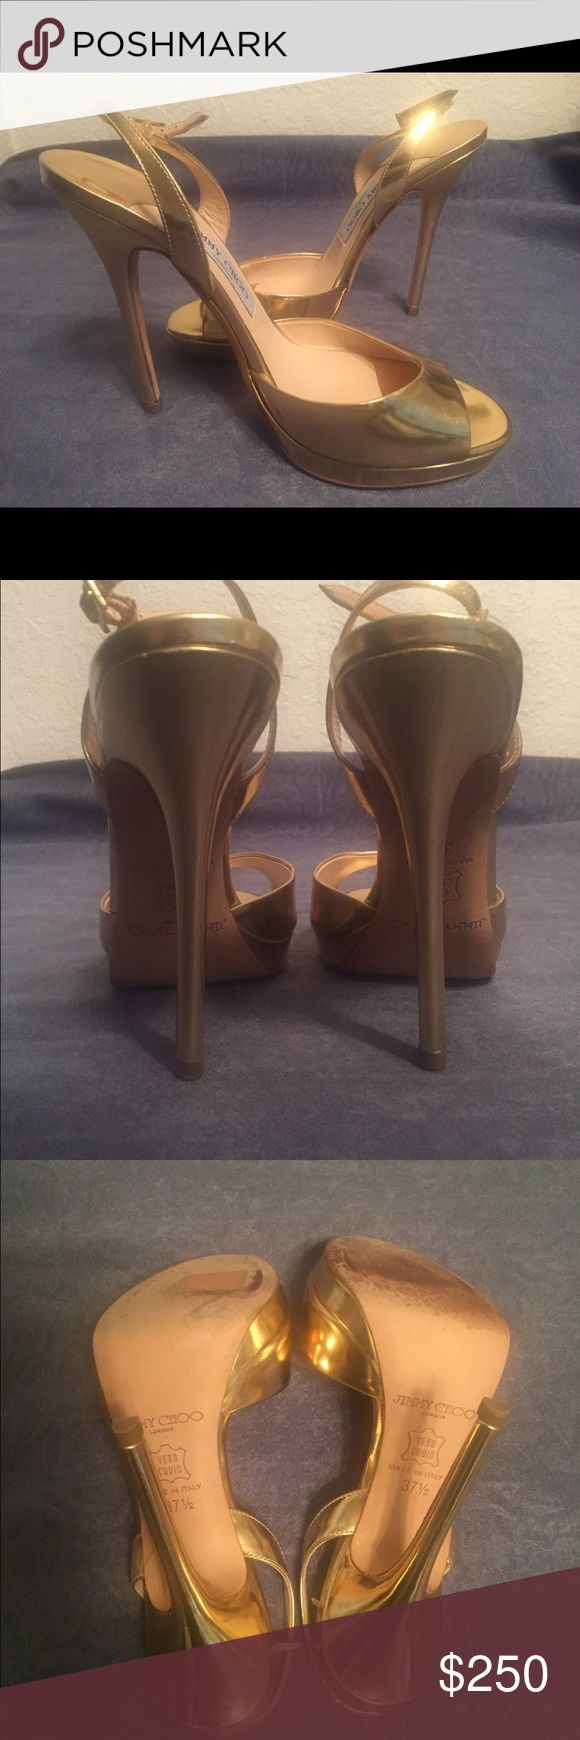 """Authentic Jimmy Choo gold open toe heel 37.5  Beautiful authentic Jimmy Choo gold open toe sandal heel.    • Preowned only worn twice • Size 37.5 • Heel height 4 3/4"""" • In overall very good condition, one black mark noted in photos.  Photos taken the day of listing. Jimmy Choo Shoes Heels"""